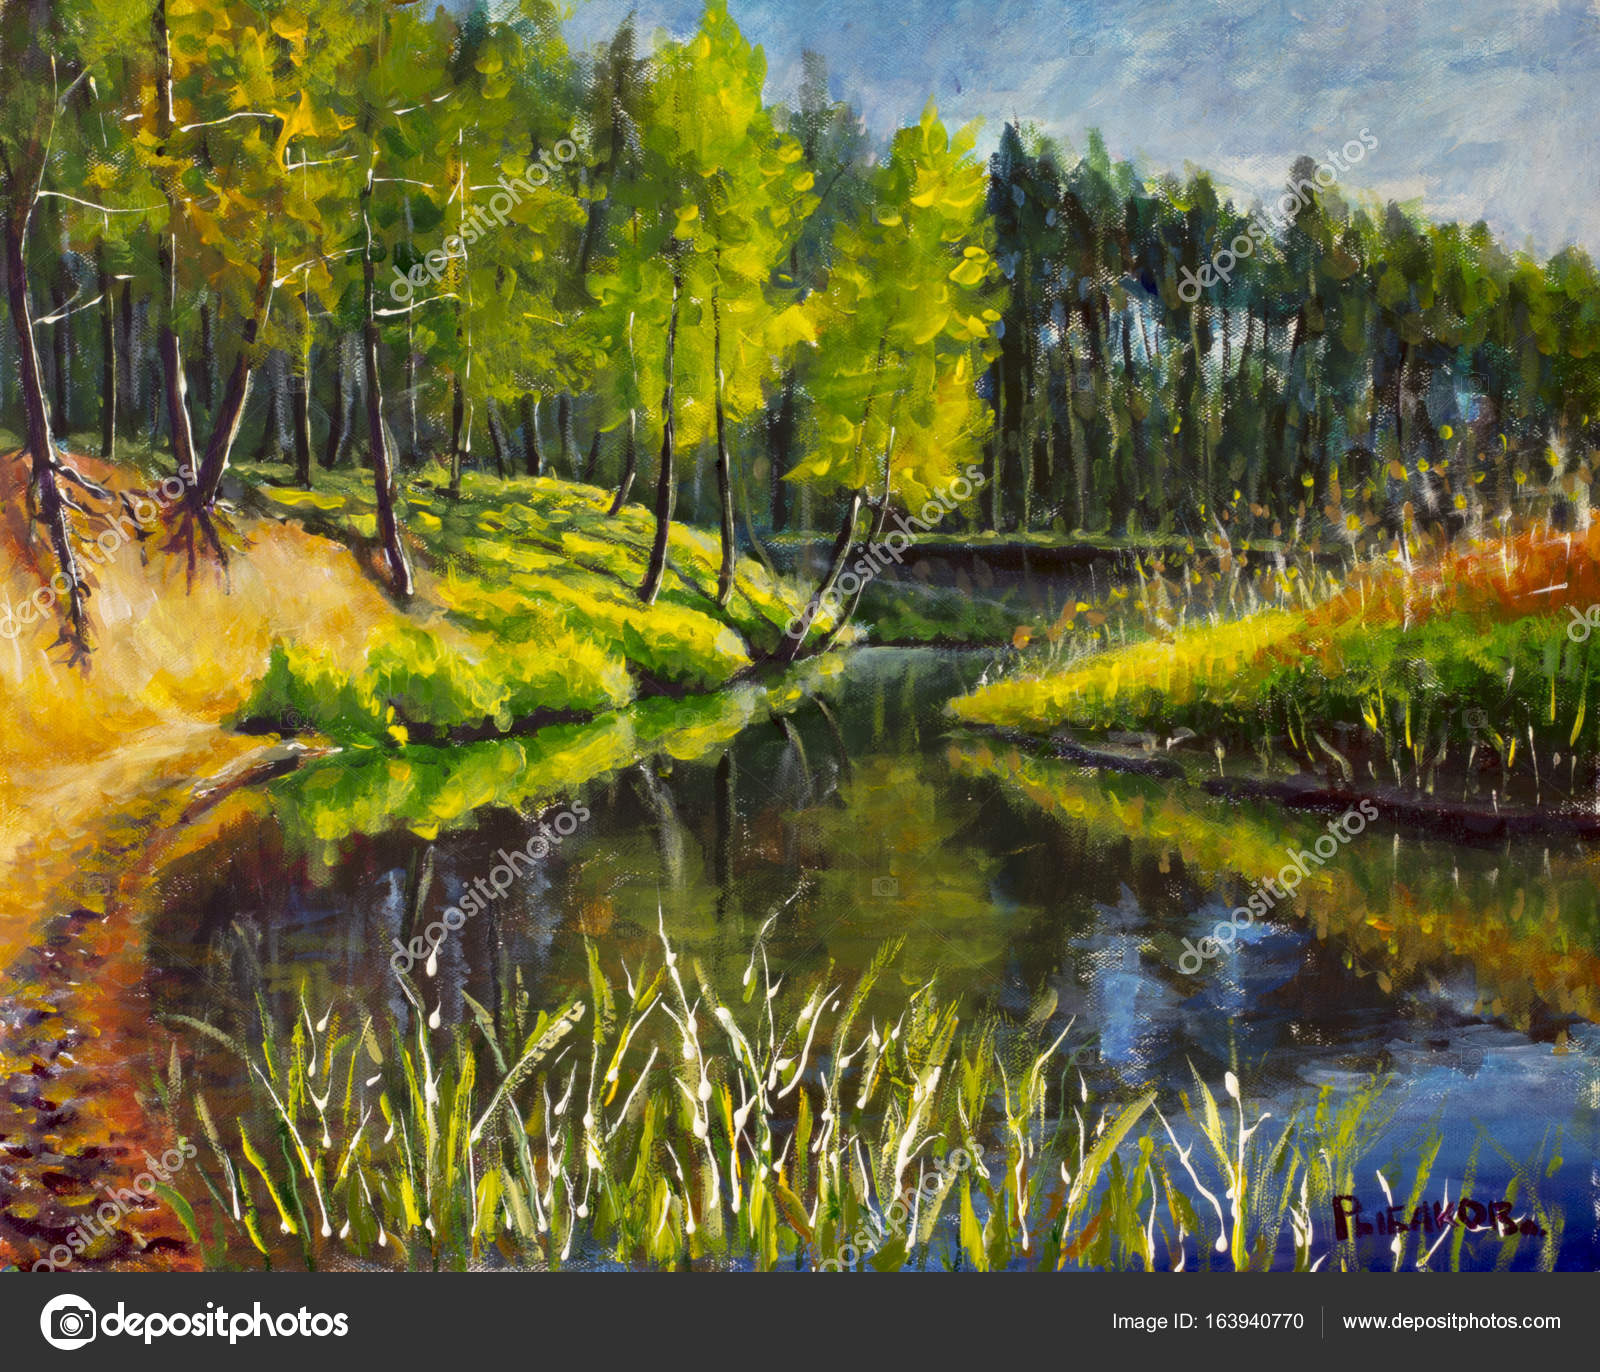 Original Oil Painting Bright Green Trees Reflected Water Landscape ...